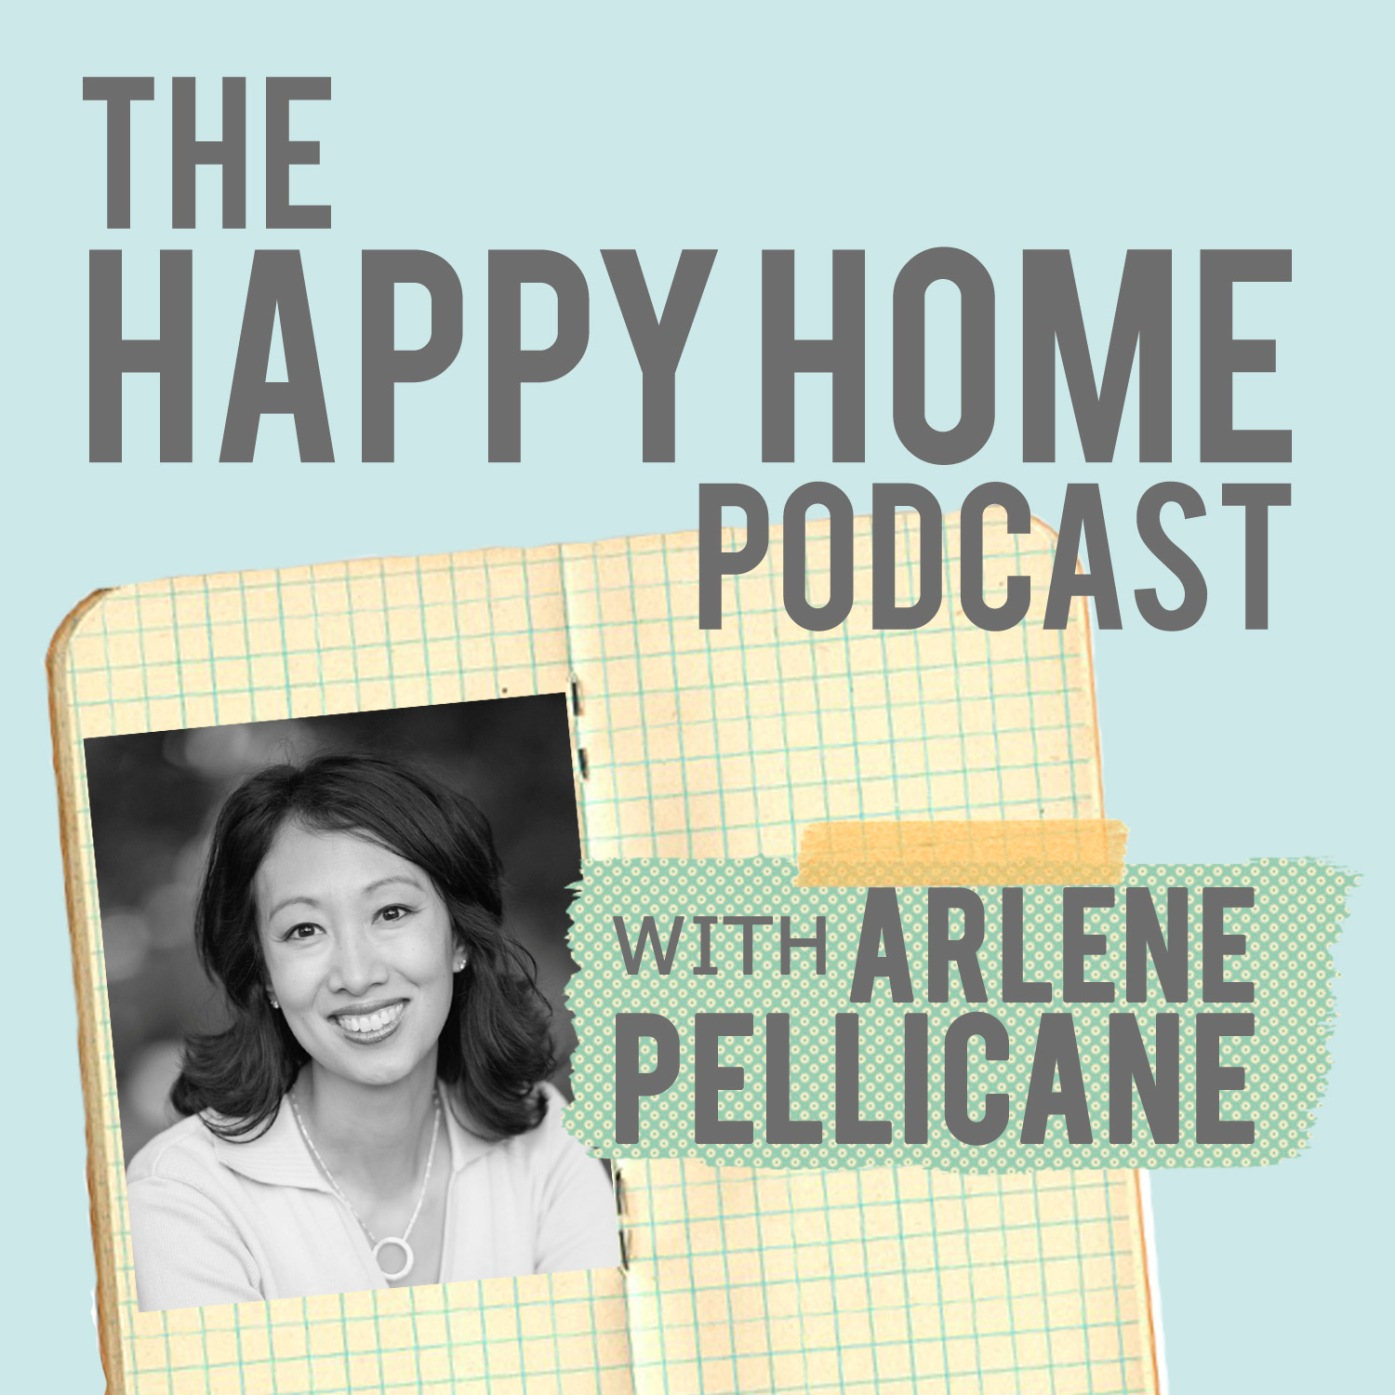 Leslie Vernick on Becoming a Happy Wife